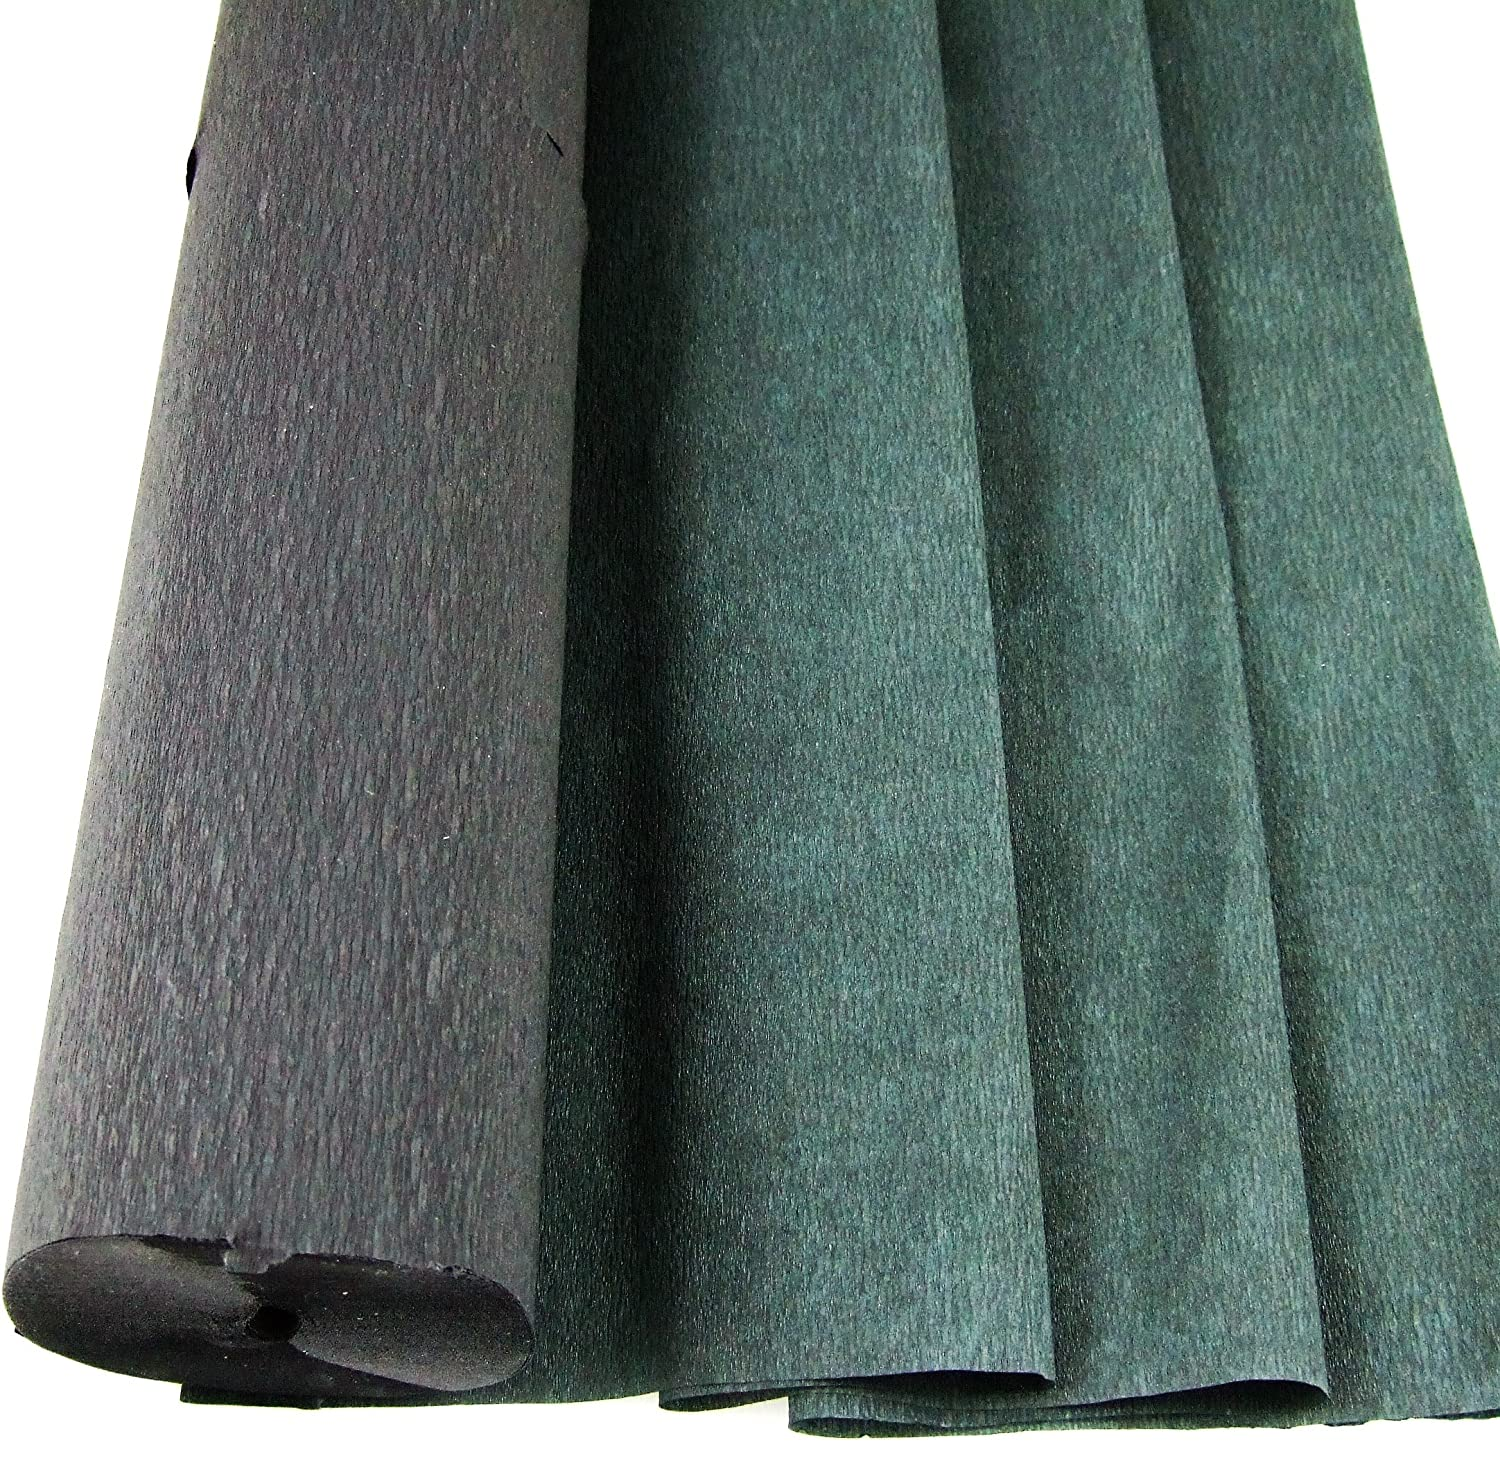 1 Black - Jumbo 26 Metre Crepe Paper Roll. 50cm x 26metres long Many uses as decorations, marketing tools, great favourite with schools and the craft industry Clikkabox Crepe C60V